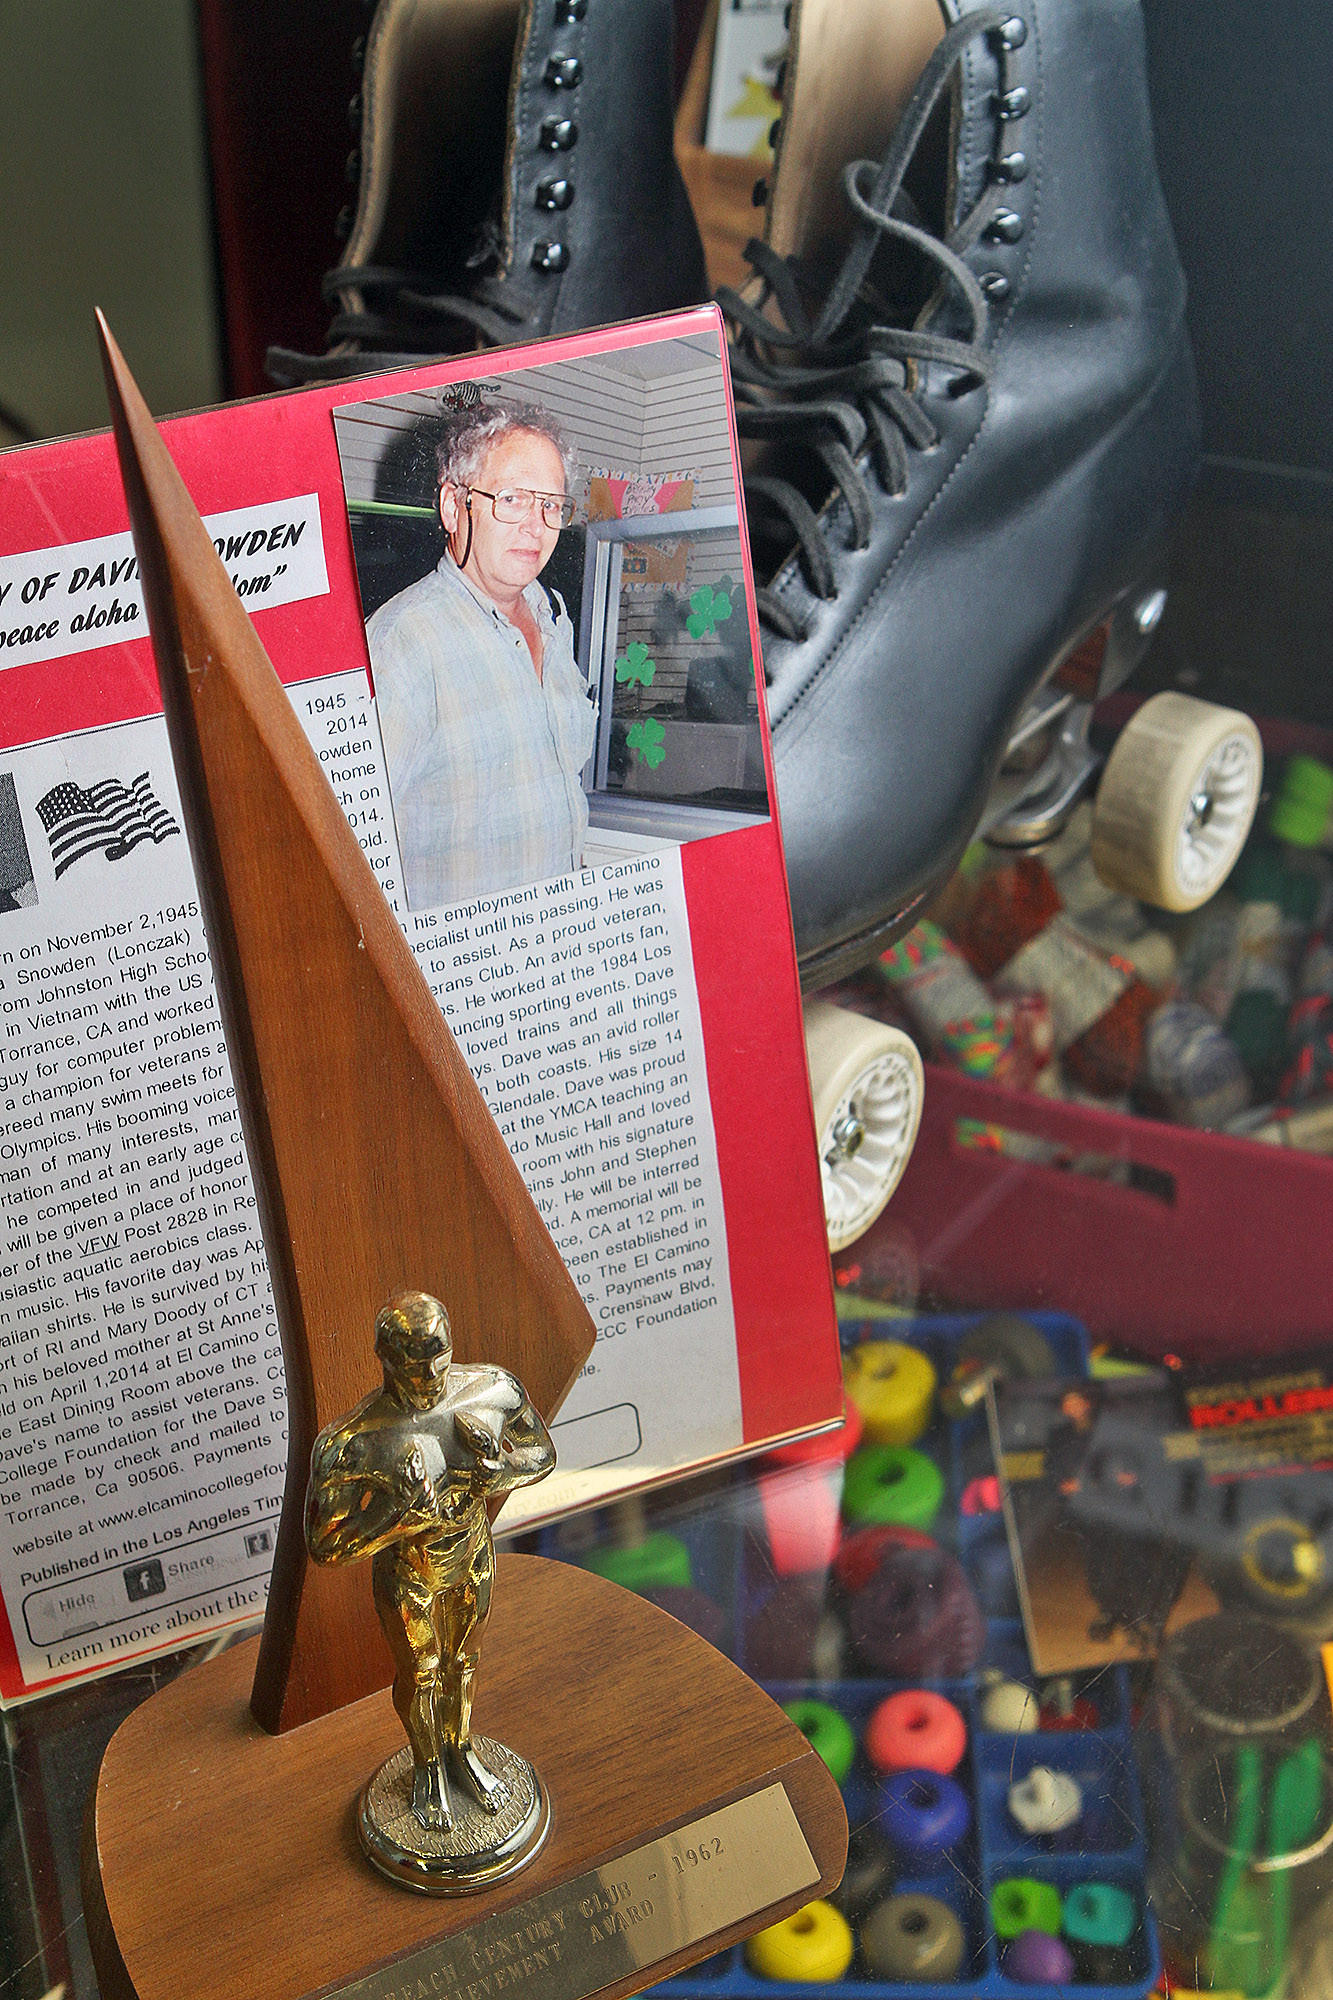 A memorial to David Snowden at Moonlight Roller Way in Glendale on Thursday, March 27, 2014. Snowden died recently, but when alive, he was a regular skater, contest judge, and competitive skater.